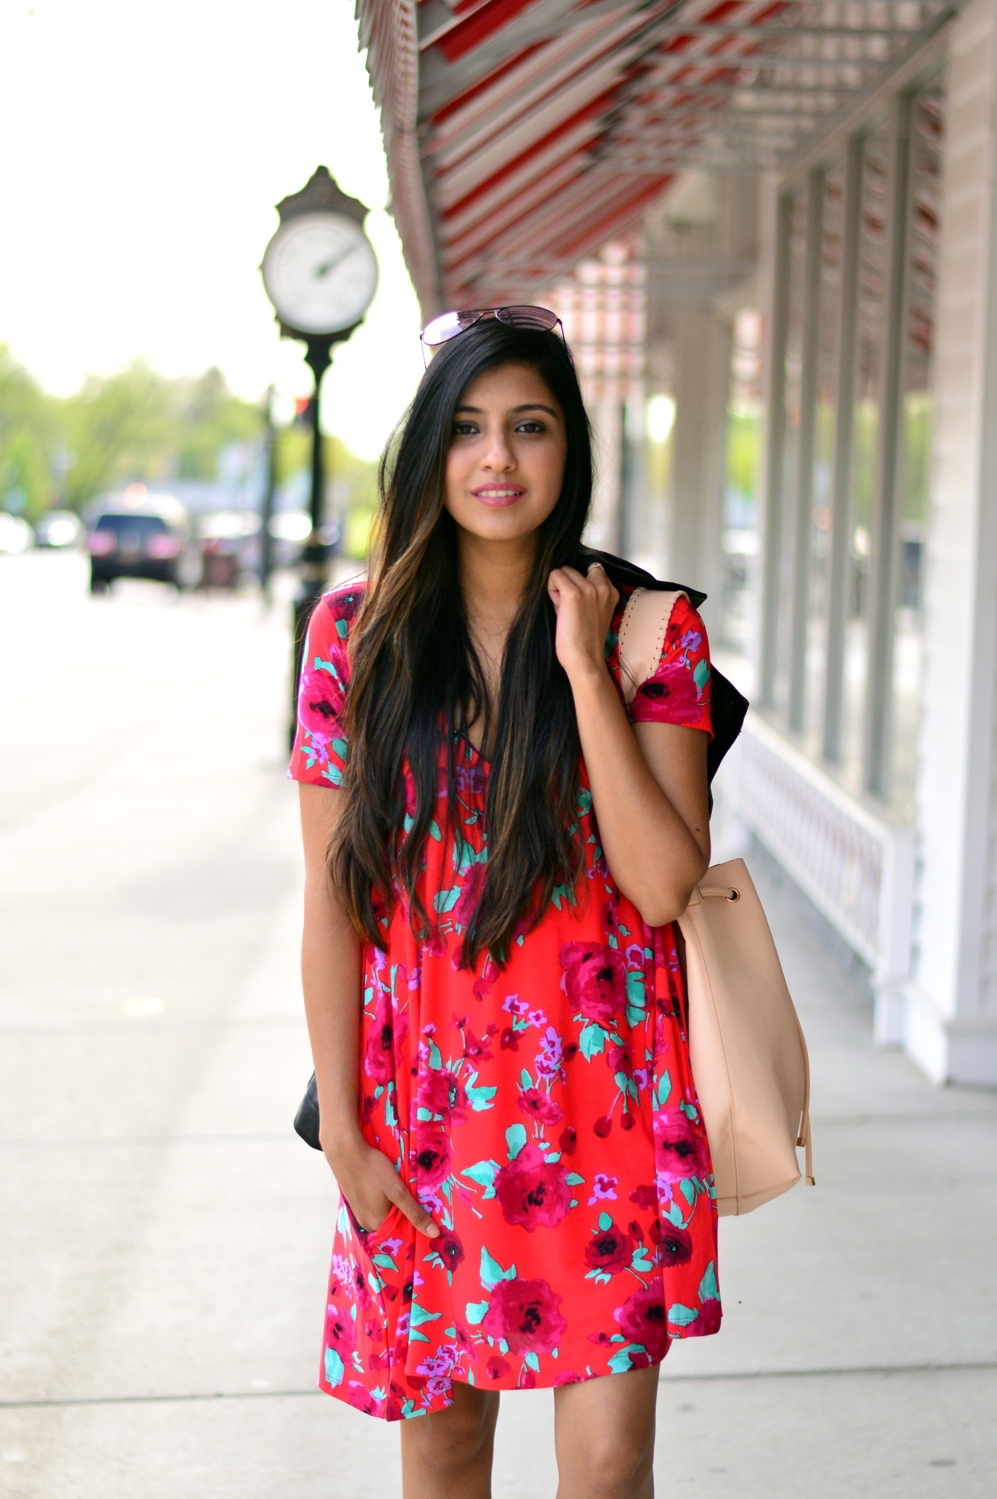 floral-swing-dress-lace-up-flats-spring-style-outfit 8